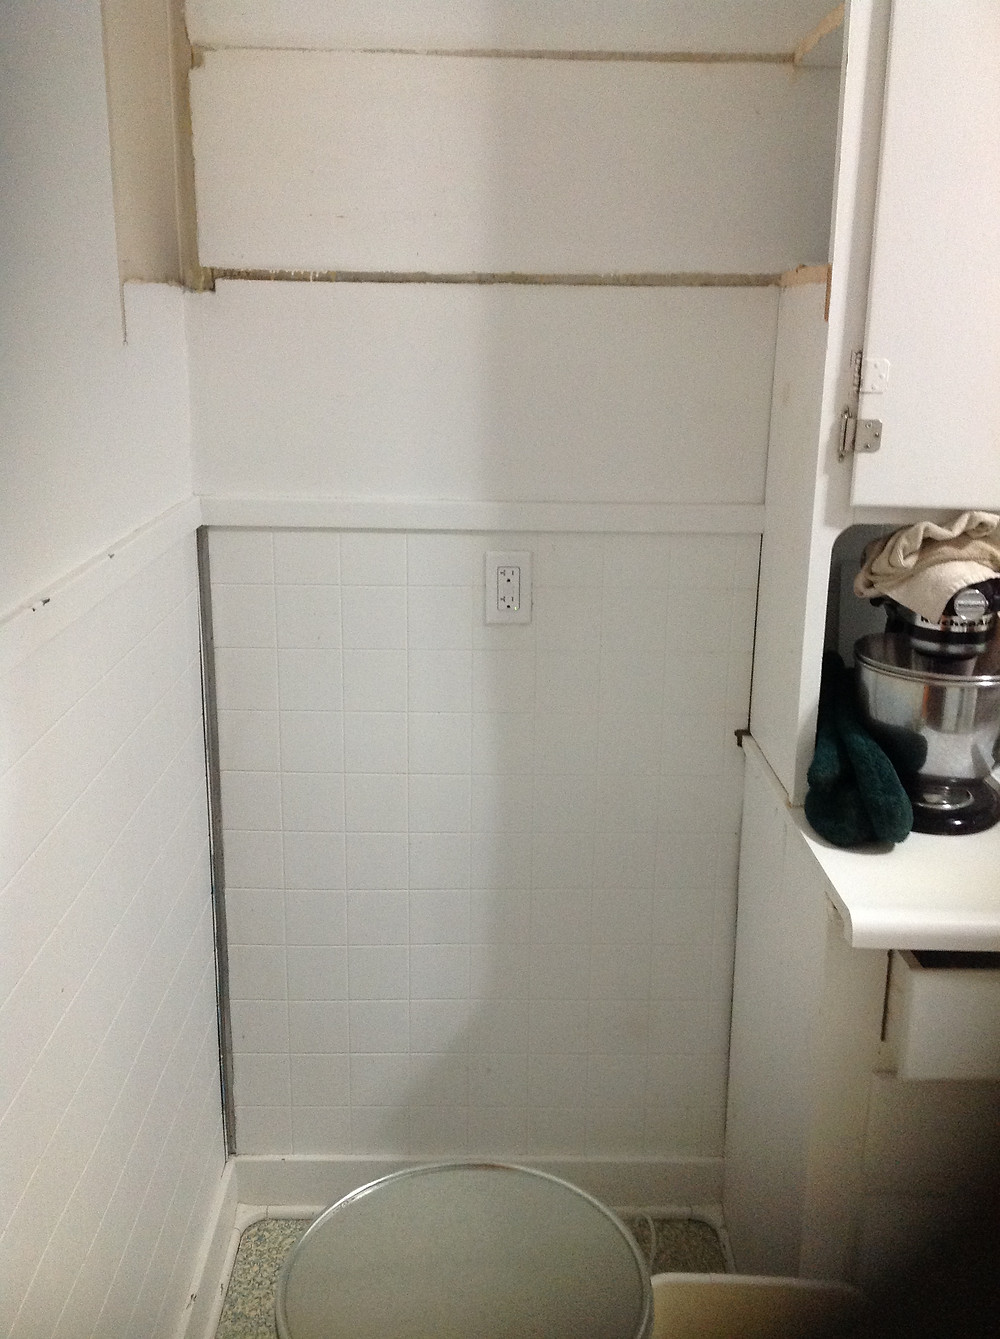 Refrigerator spot with no cupboards above.